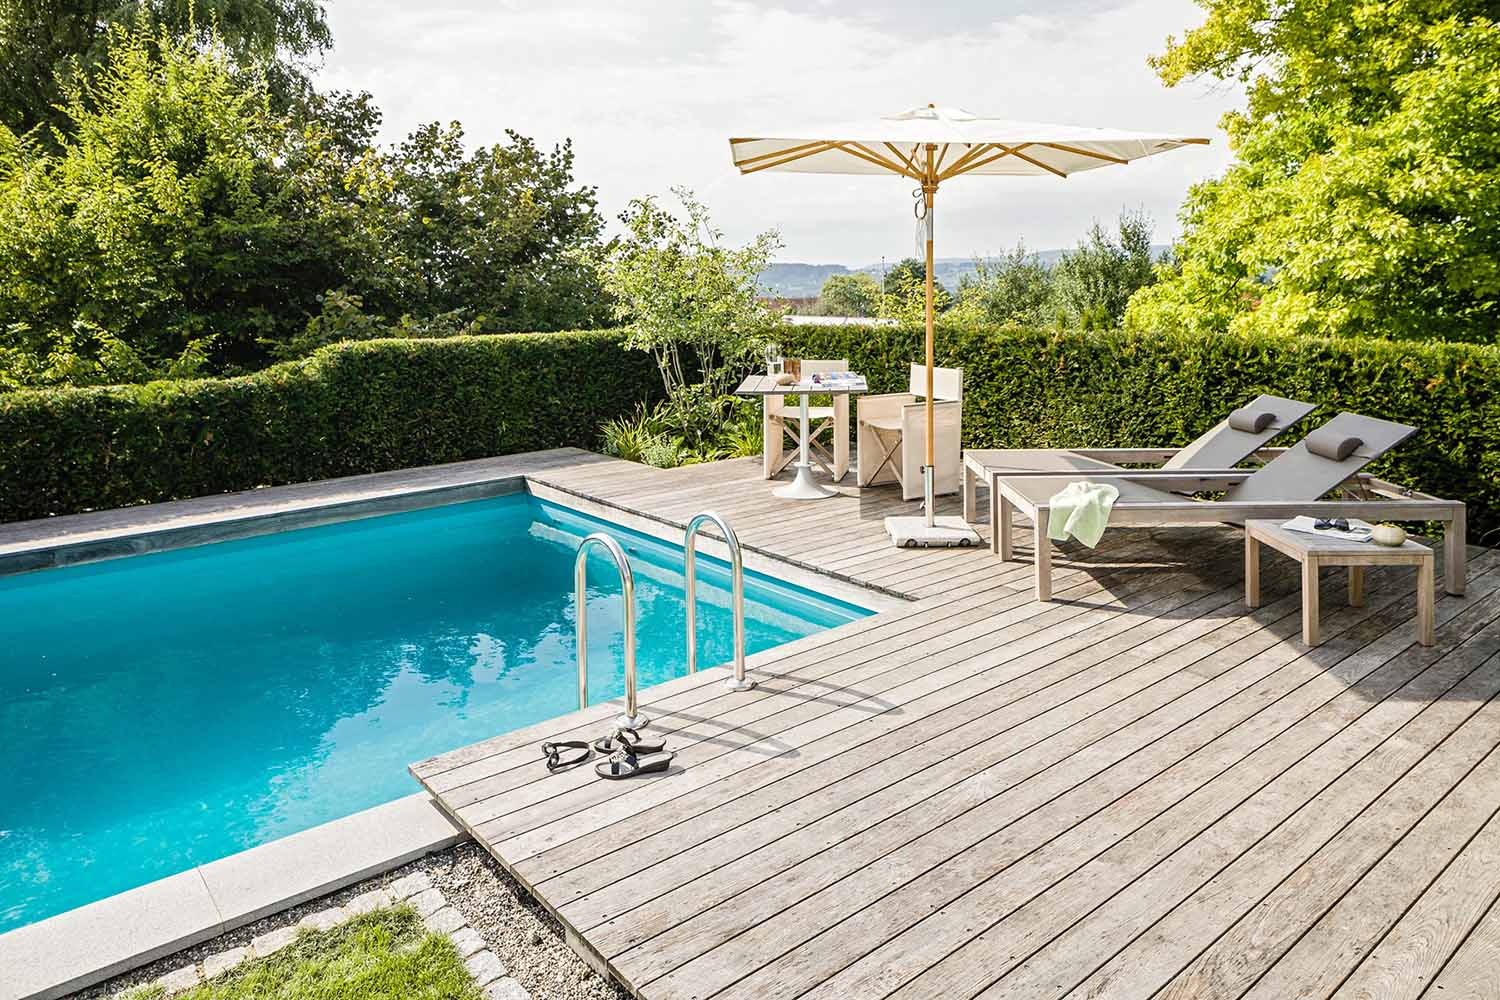 garten mit pool gestalten garten gestalten mit pool baum garten photo sch ne g rten mit pool. Black Bedroom Furniture Sets. Home Design Ideas